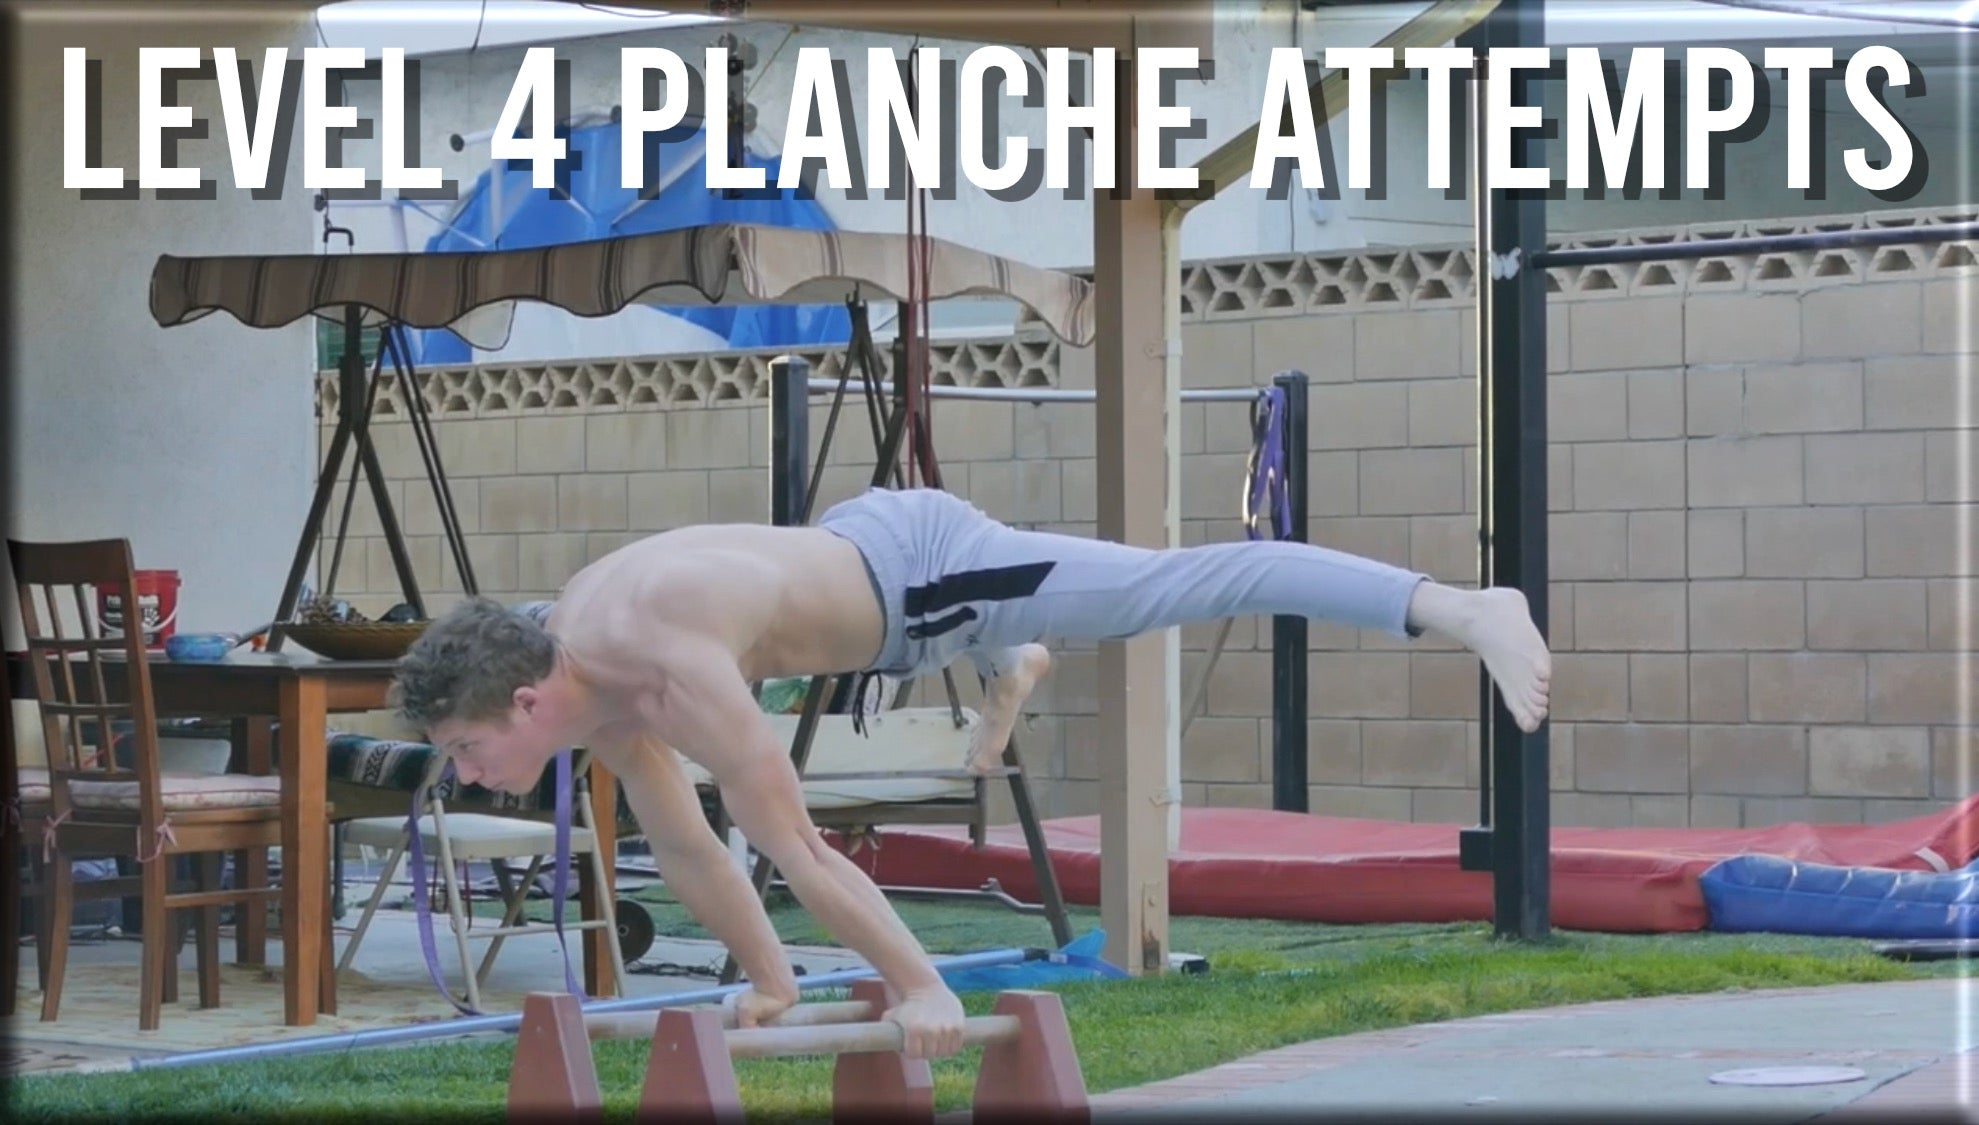 Level 4 Planche Attempts